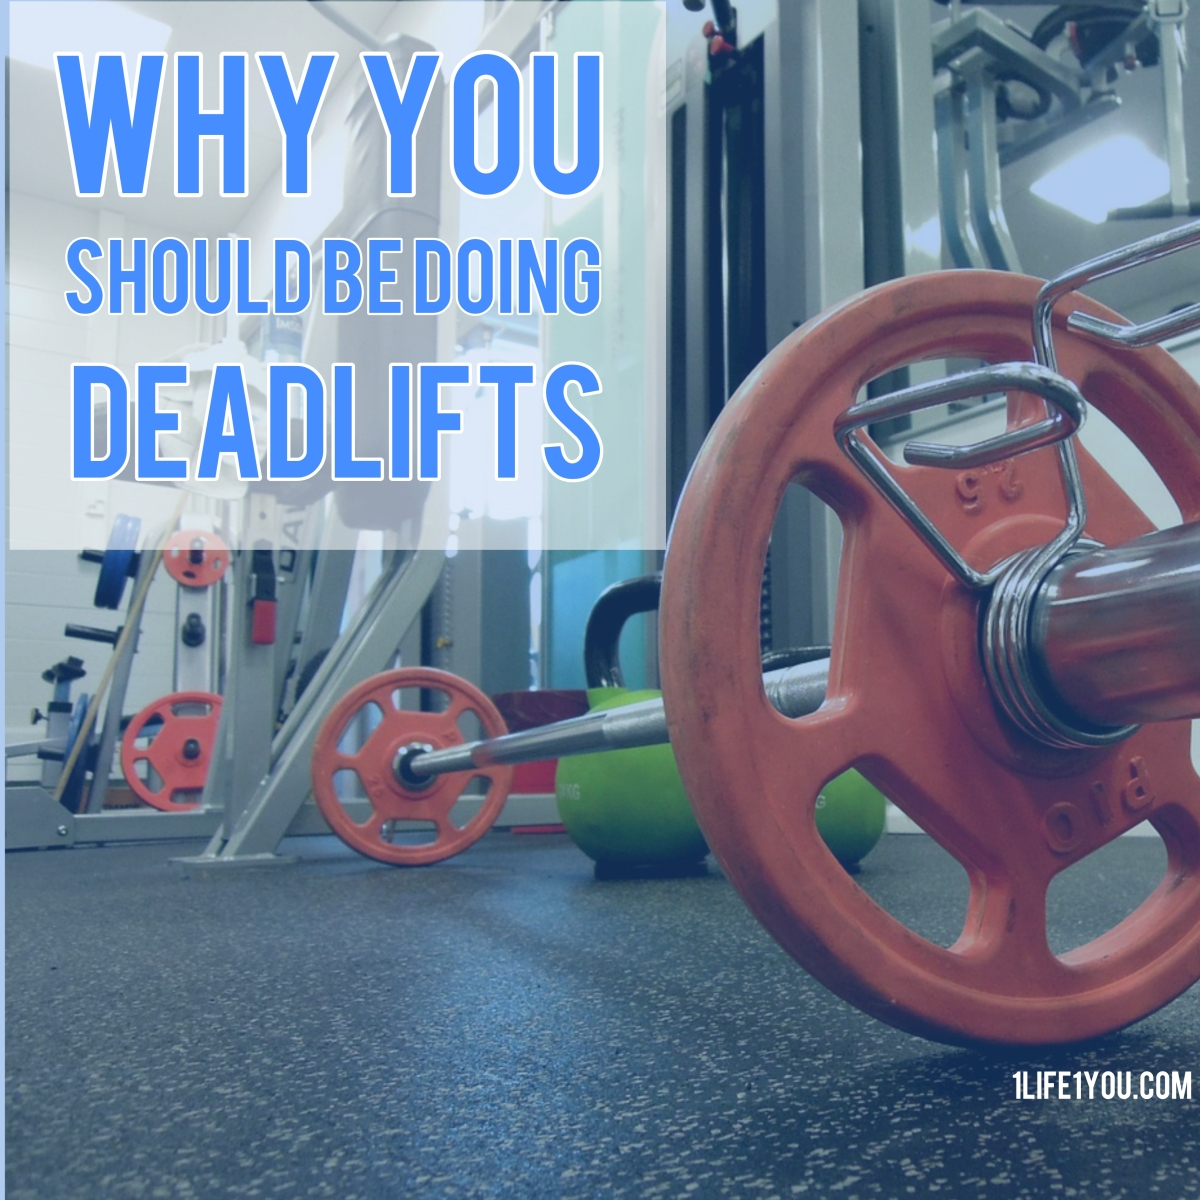 Why YOU Should Be Doing Deadlifts